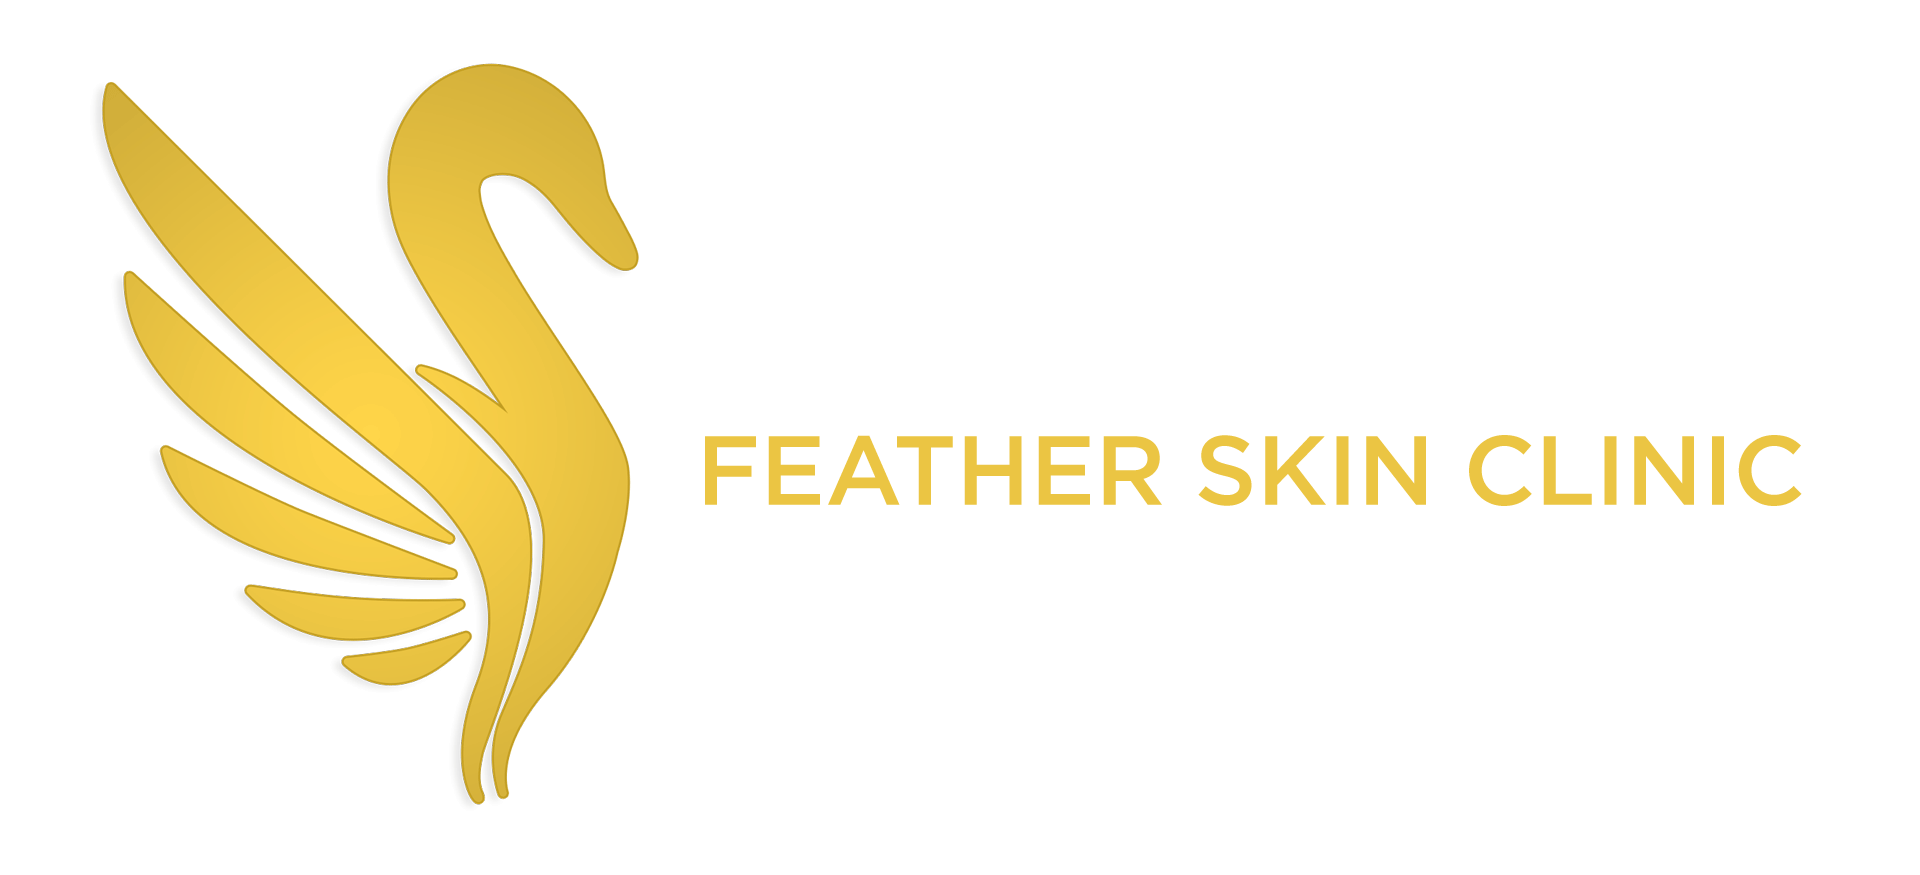 Feather Skin Clinic Logo